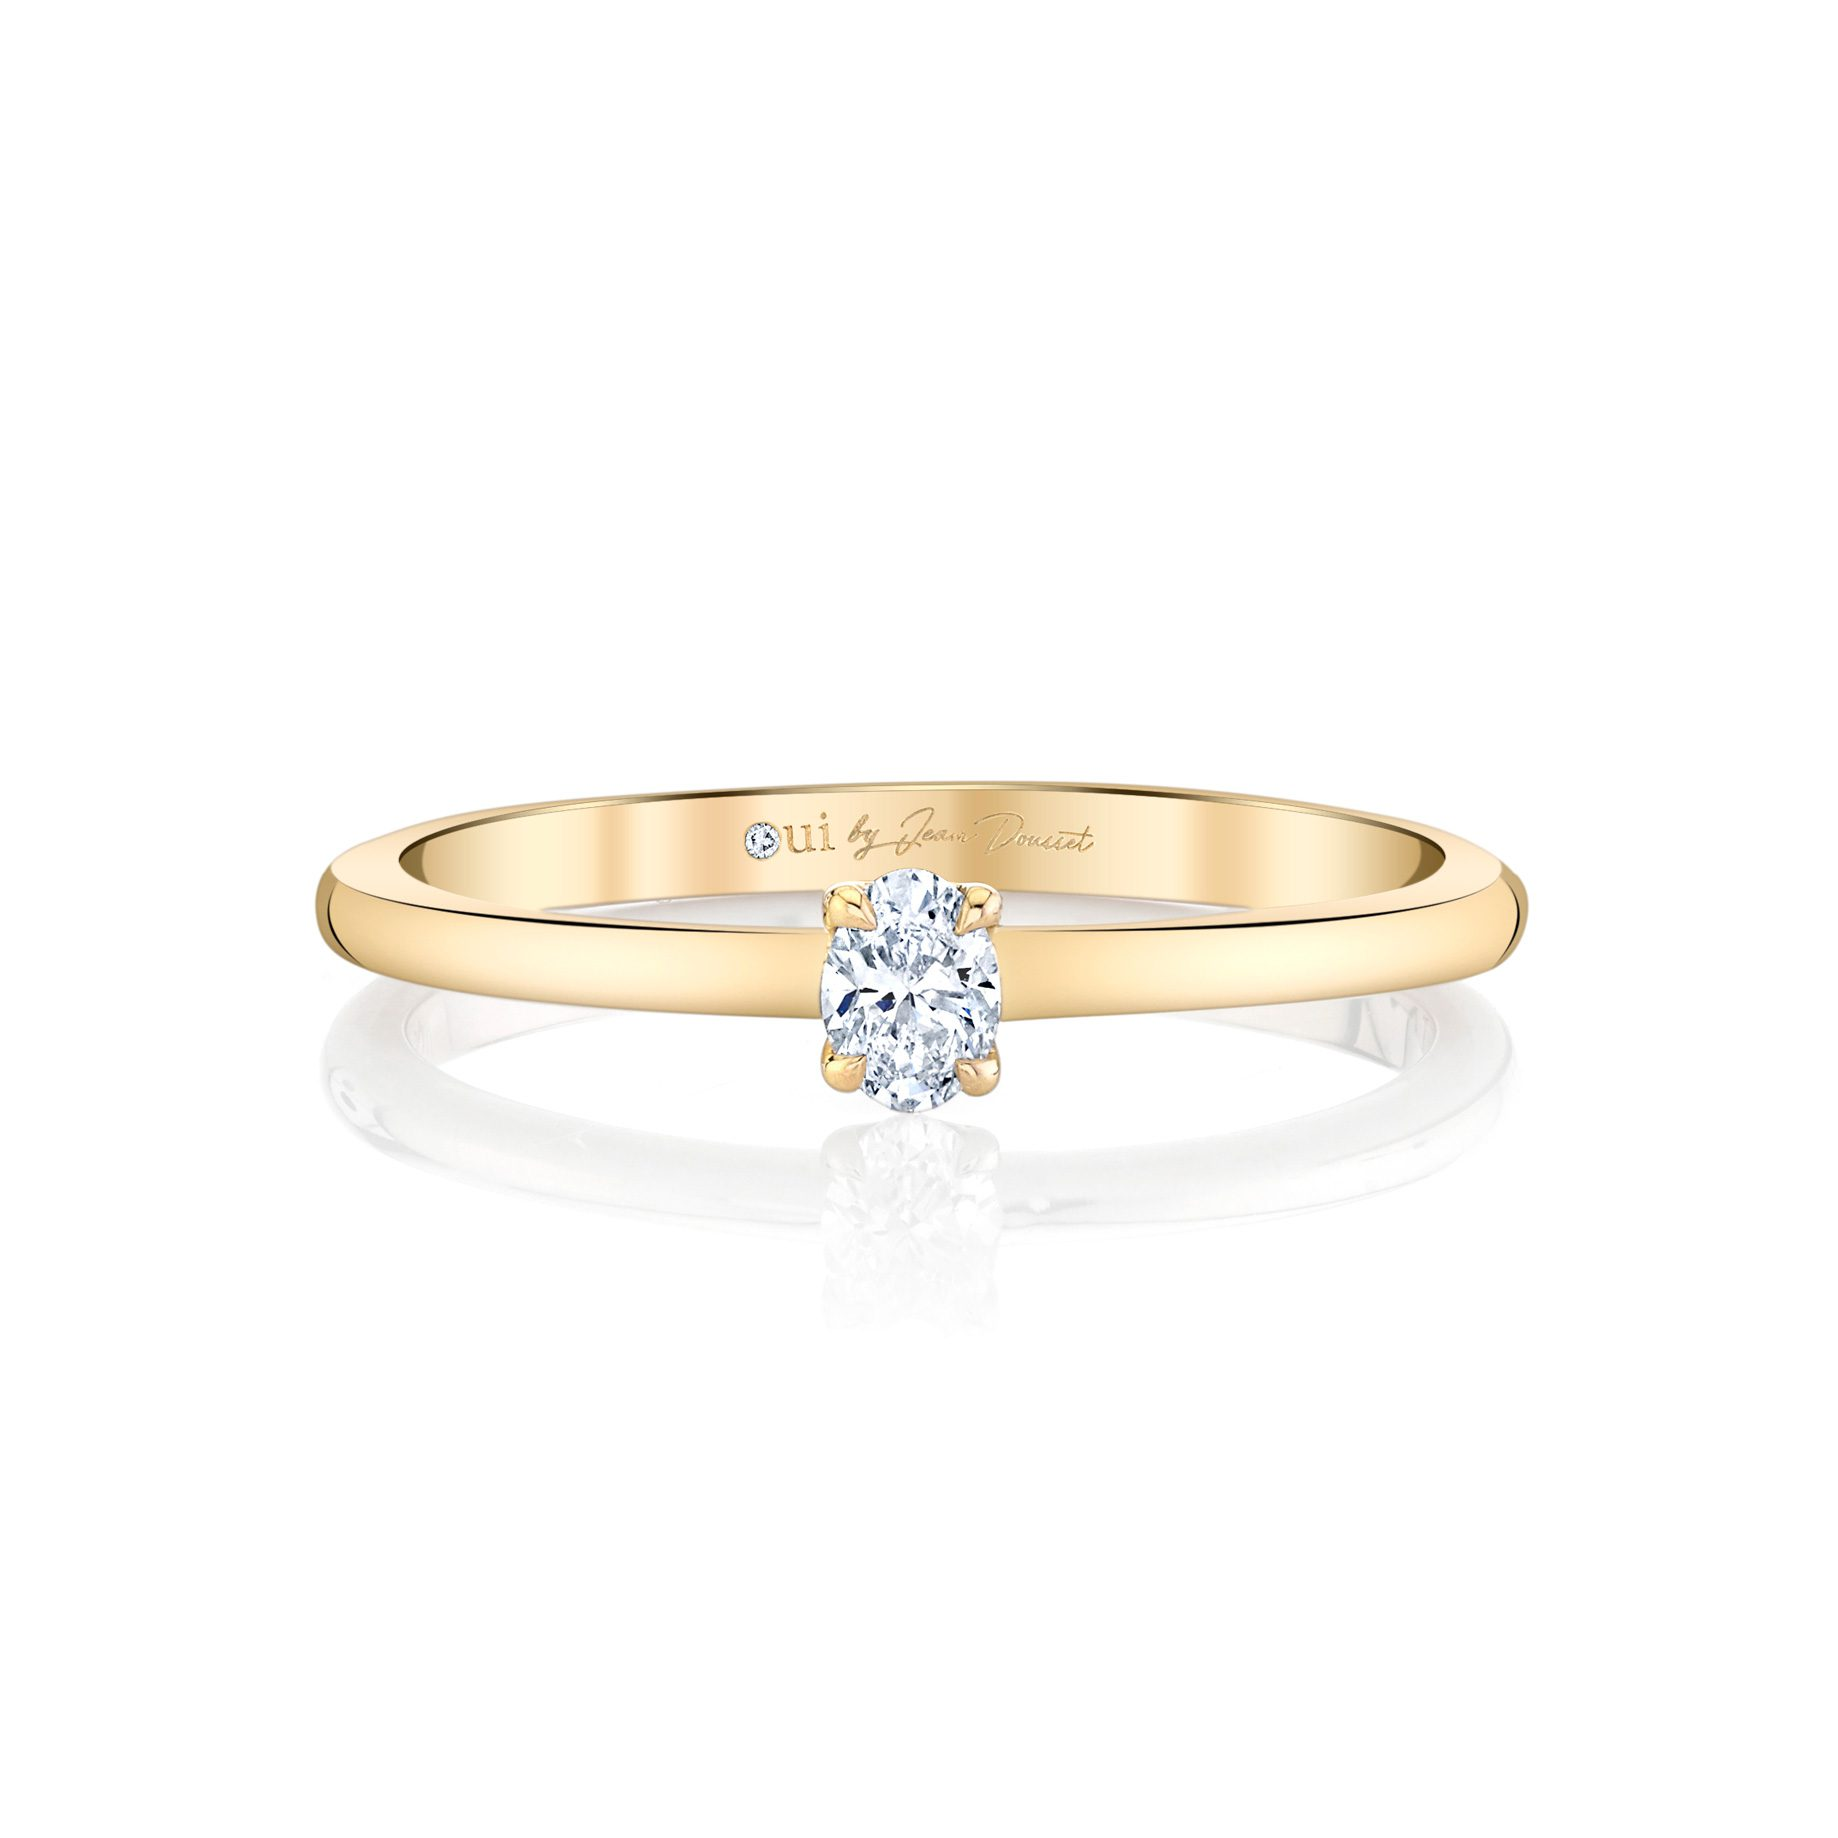 La Petite Oval Diamond Wedding Band in 18k Yellow Gold Front View by Oui by Jean Dousset